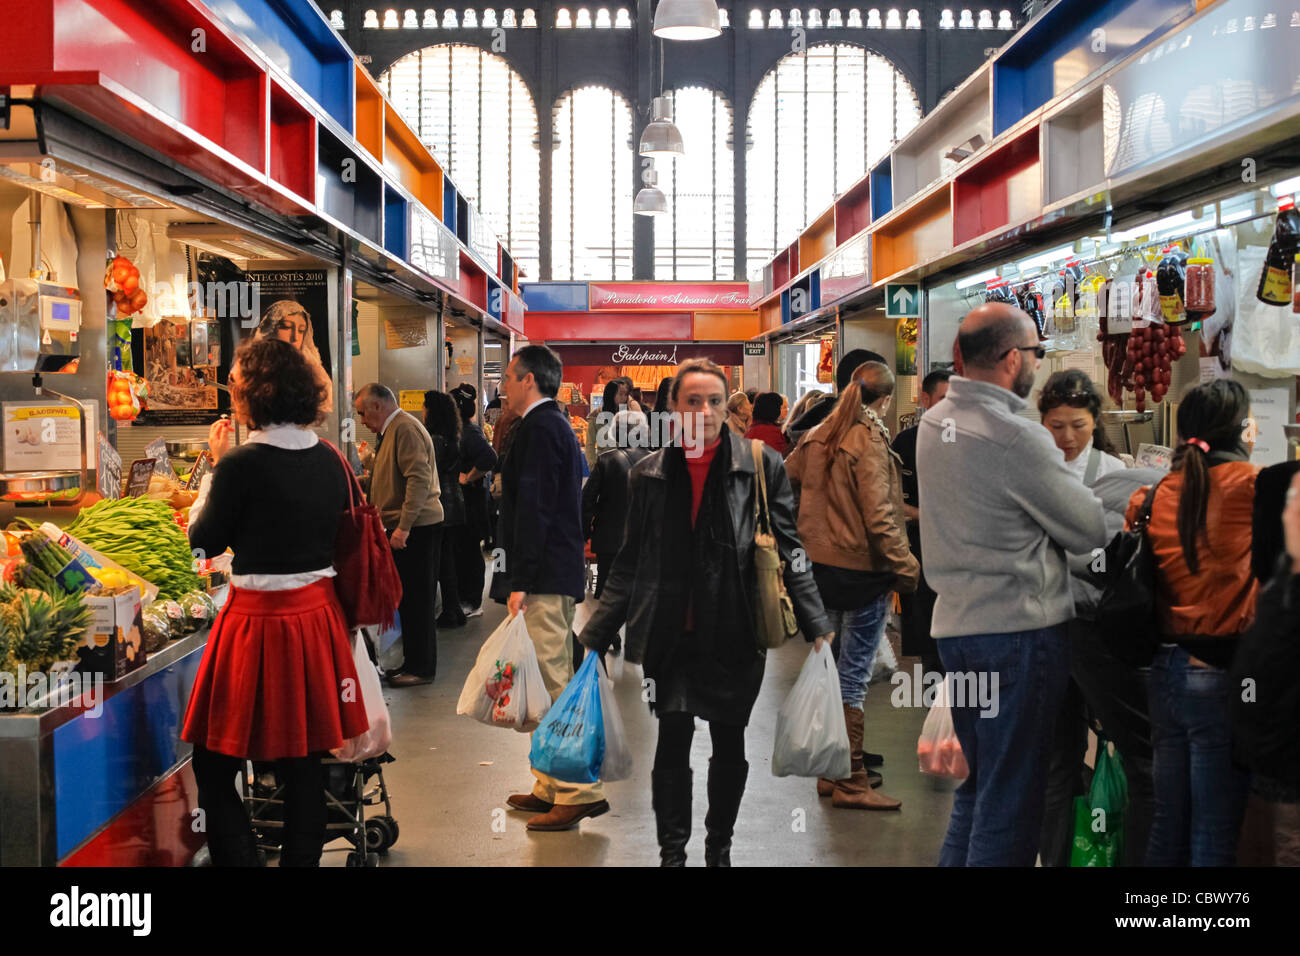 Buyers in Atarazanas market in Malaga, Spain - Stock Image